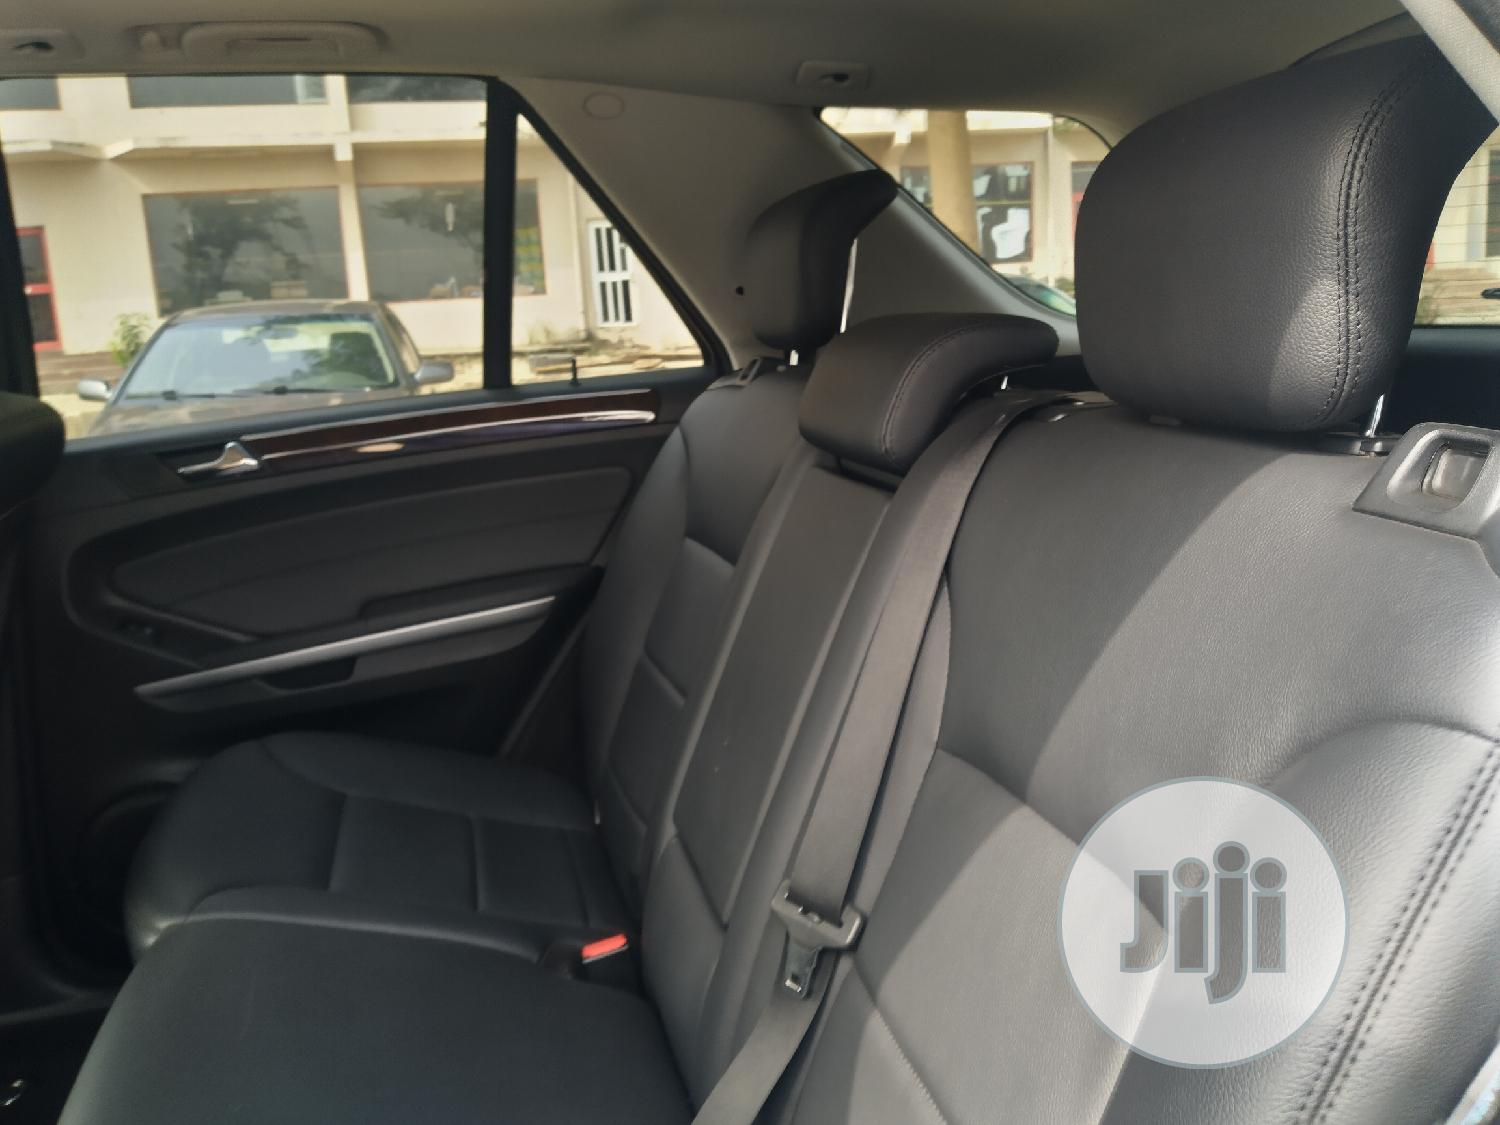 Mercedes-Benz M Class 2011 ML 350 4Matic Black   Cars for sale in Central Business Dis, Abuja (FCT) State, Nigeria